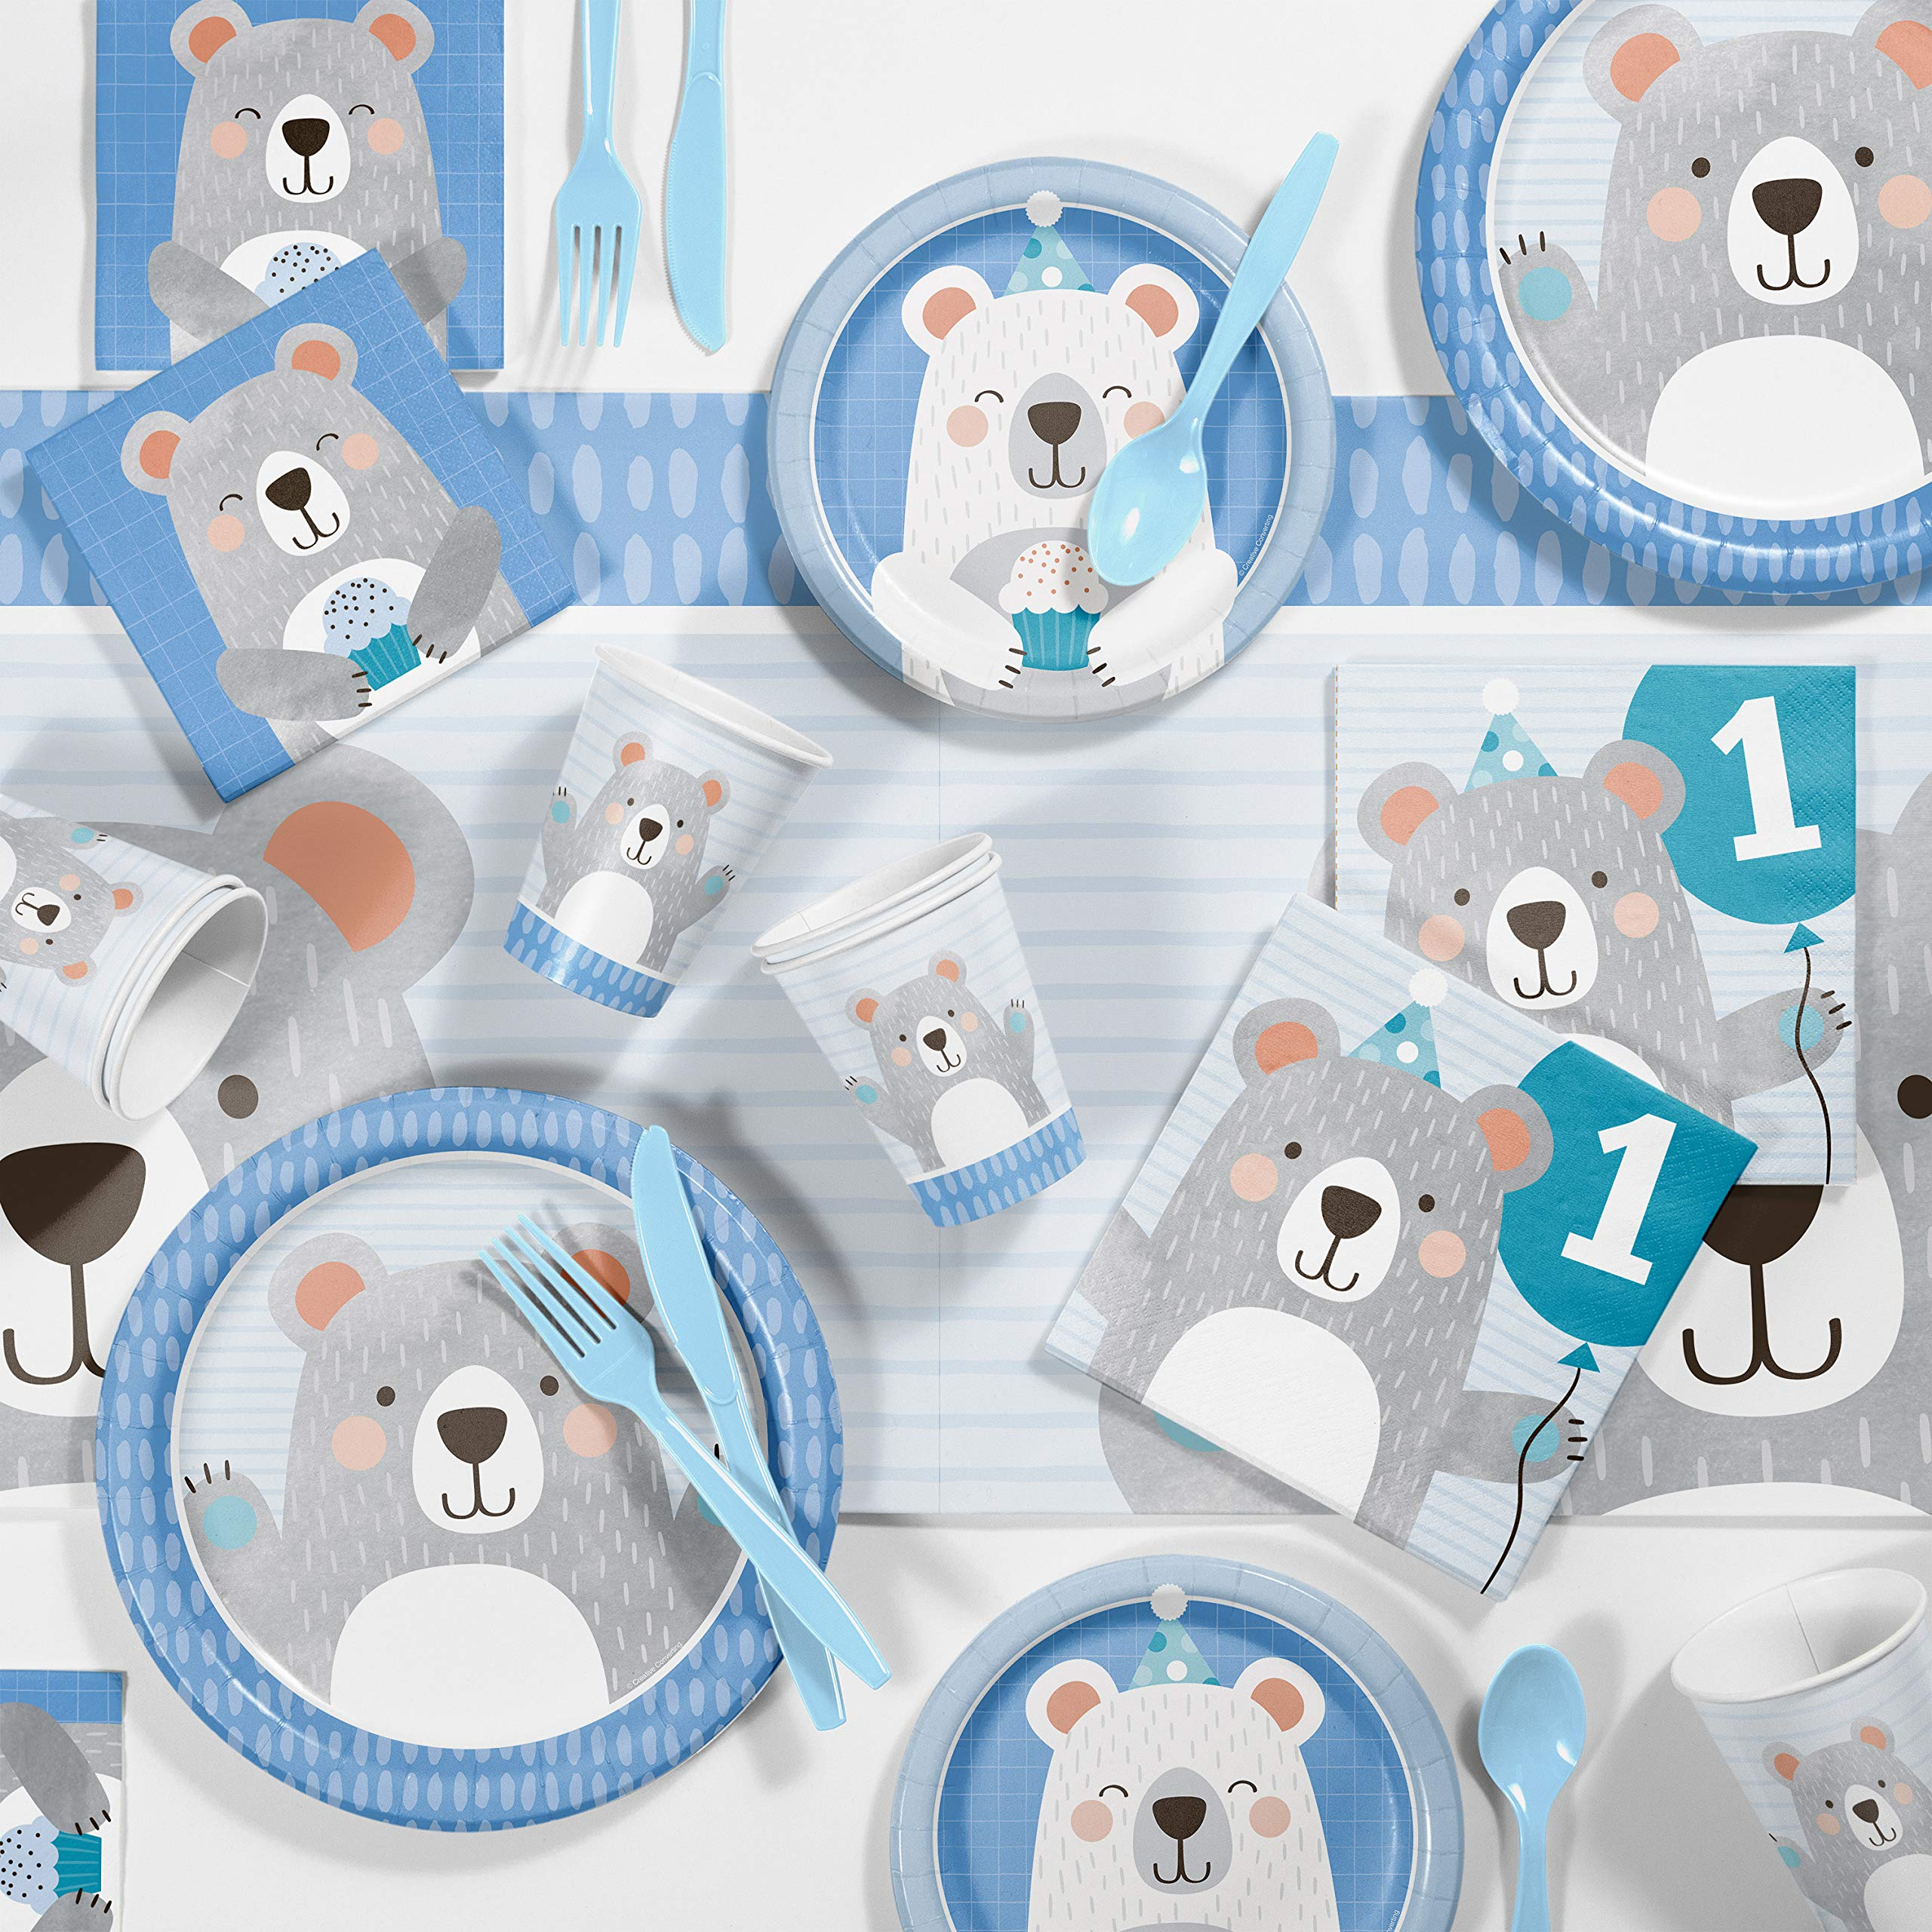 Baby first birthday themes Kraft Paper Bags Don/'t Feed the Bears 1st birthday party First Birthday Ideas